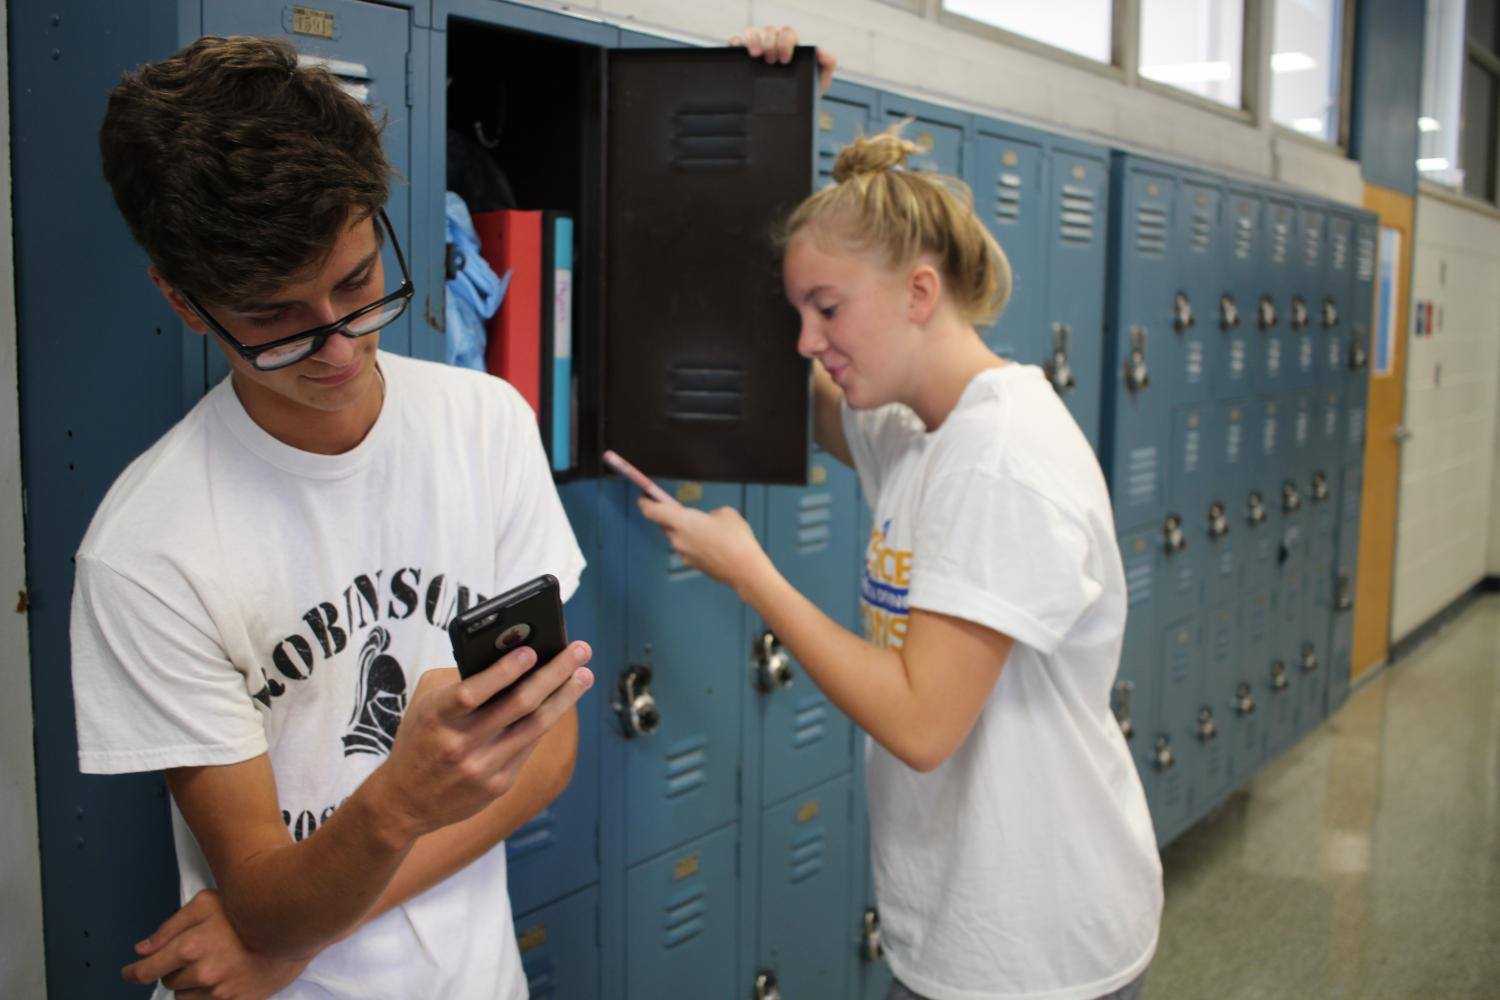 Abigail+Meyer+%28%2718%29+and+Andrew+McMillan+%28%2718%29+wait+in+the+halls+of+Robinson+on+their+cellphones.